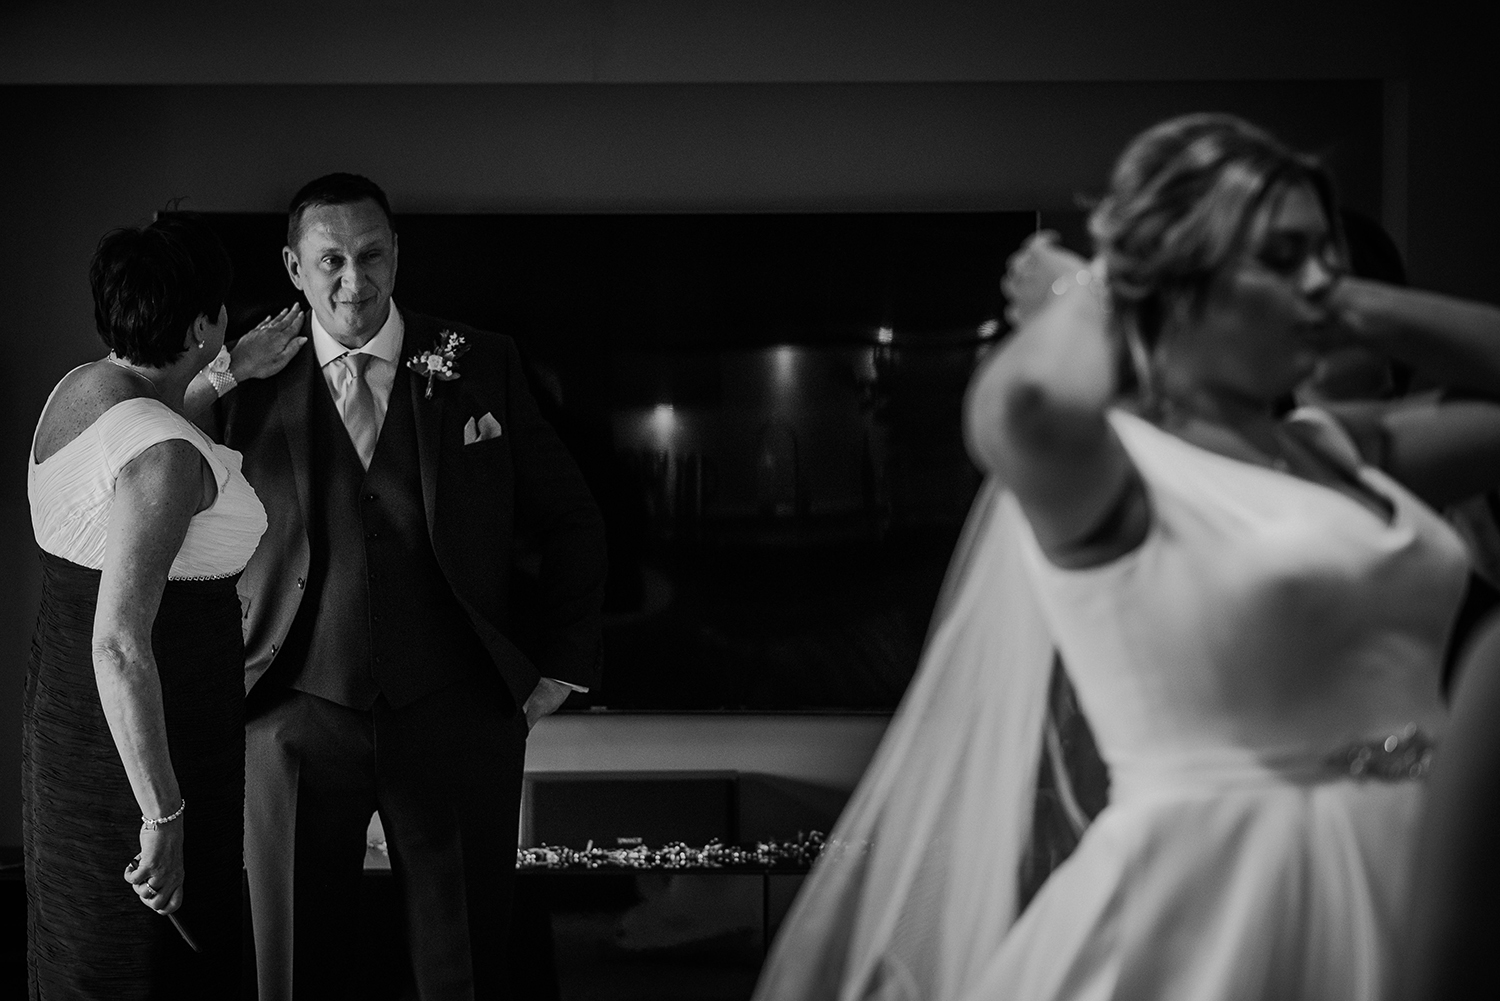 BW photo of brides mother comforting her husband as he looks proudly at his daughter in the foreground